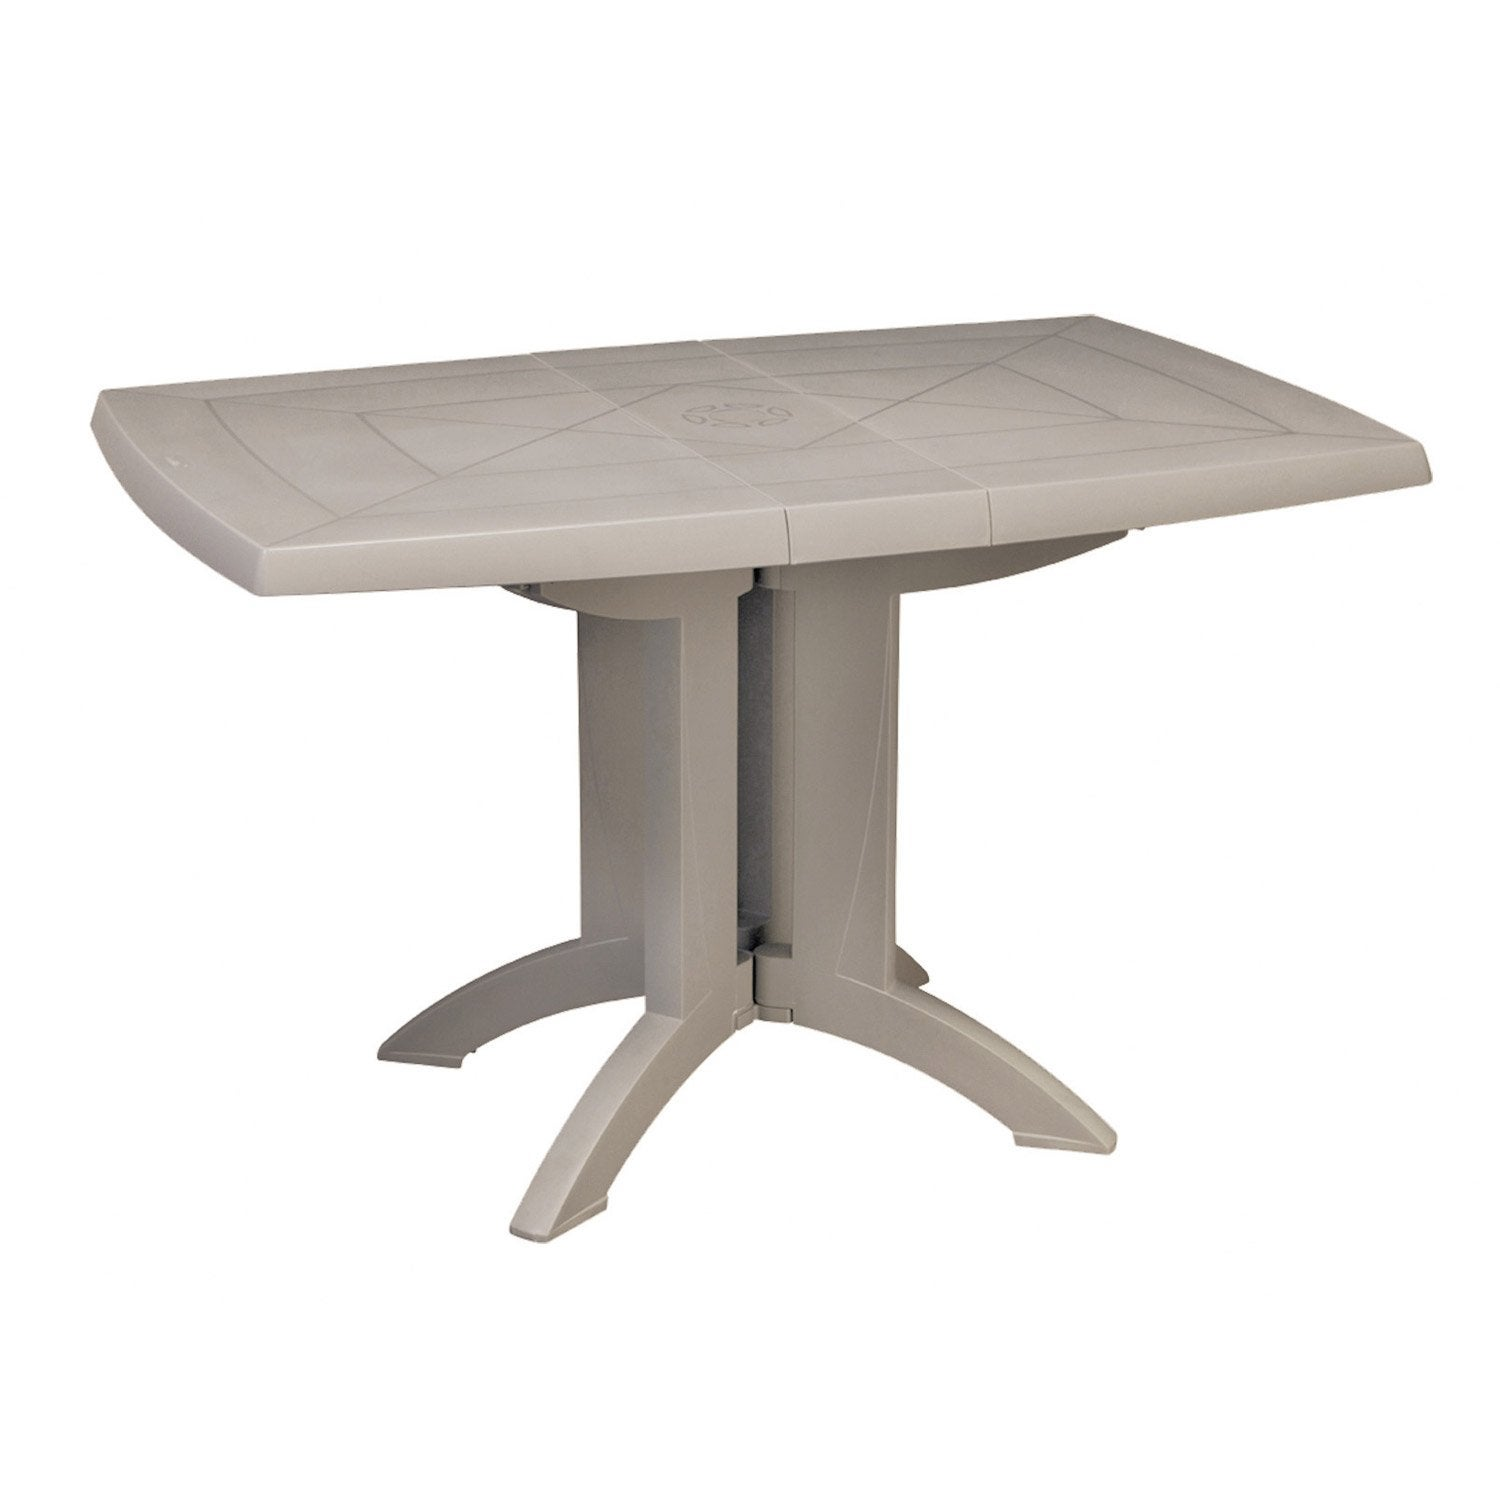 Table jardin 4 personnes maison design for Table de jardin 8 personnes